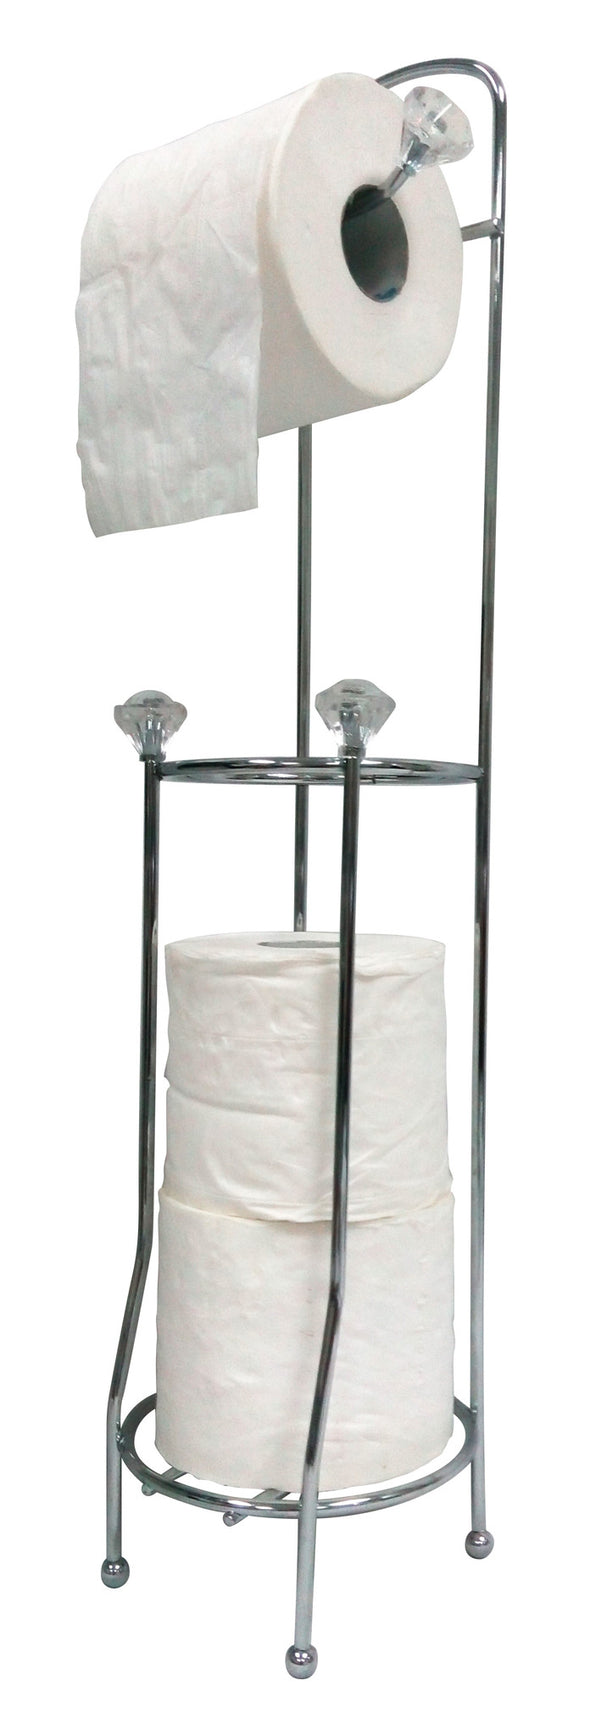 #2133 Toilet Paper Holder & Reserve (case pack 12 pcs)